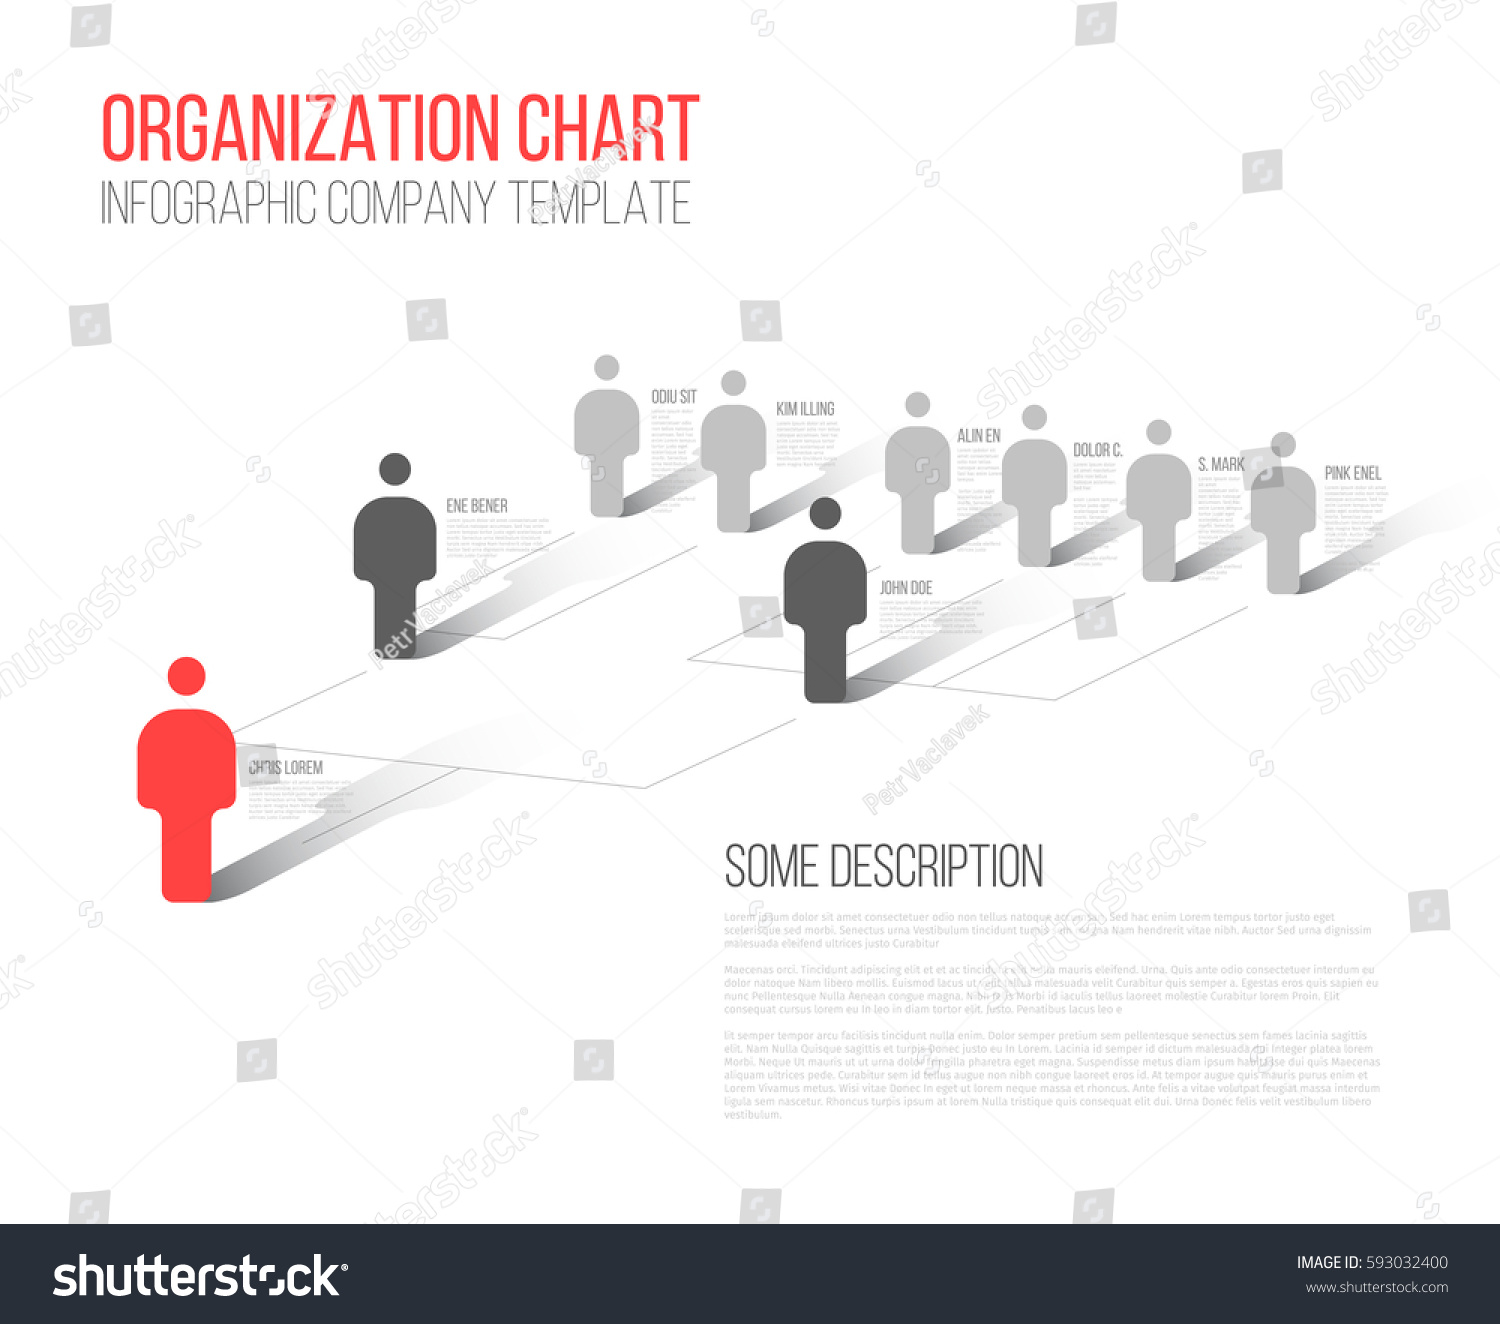 Pics photos company hierarchy template - Minimalist Company Organization Hierarchy 3d Chart Template